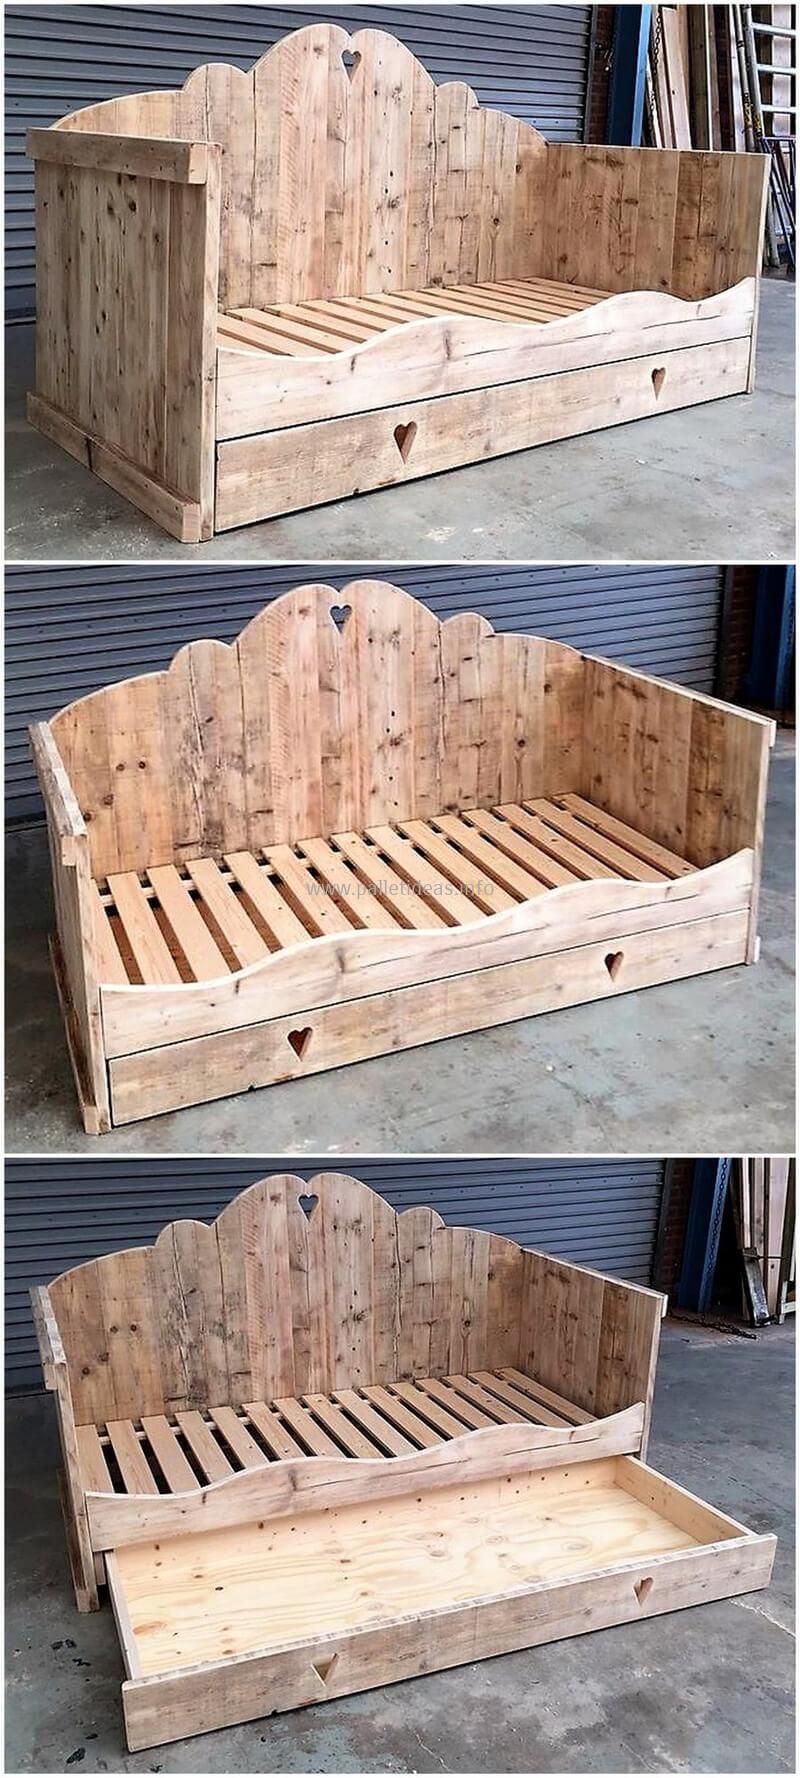 Awesome Ideas for Reusing Shipping Wooden Pallets | Muebles de ...